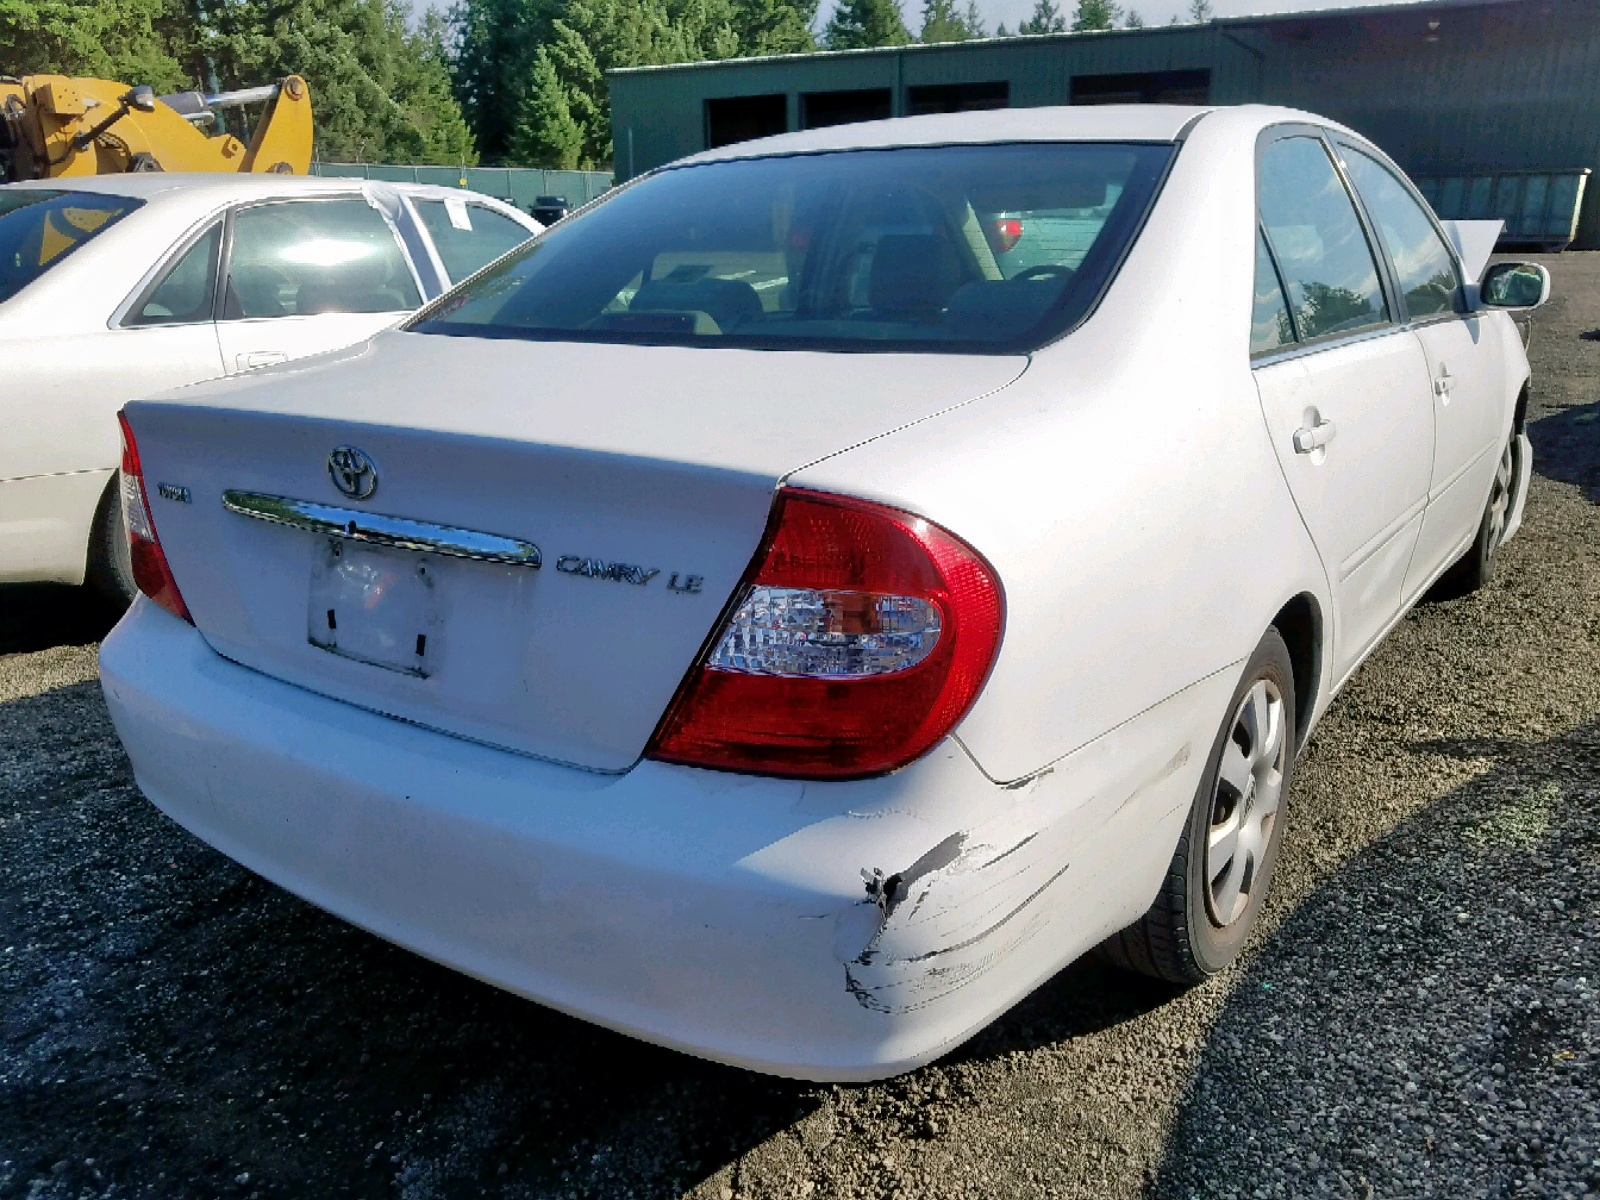 JTDBE32K520060336 - 2002 Toyota Camry Le 2.4L rear view